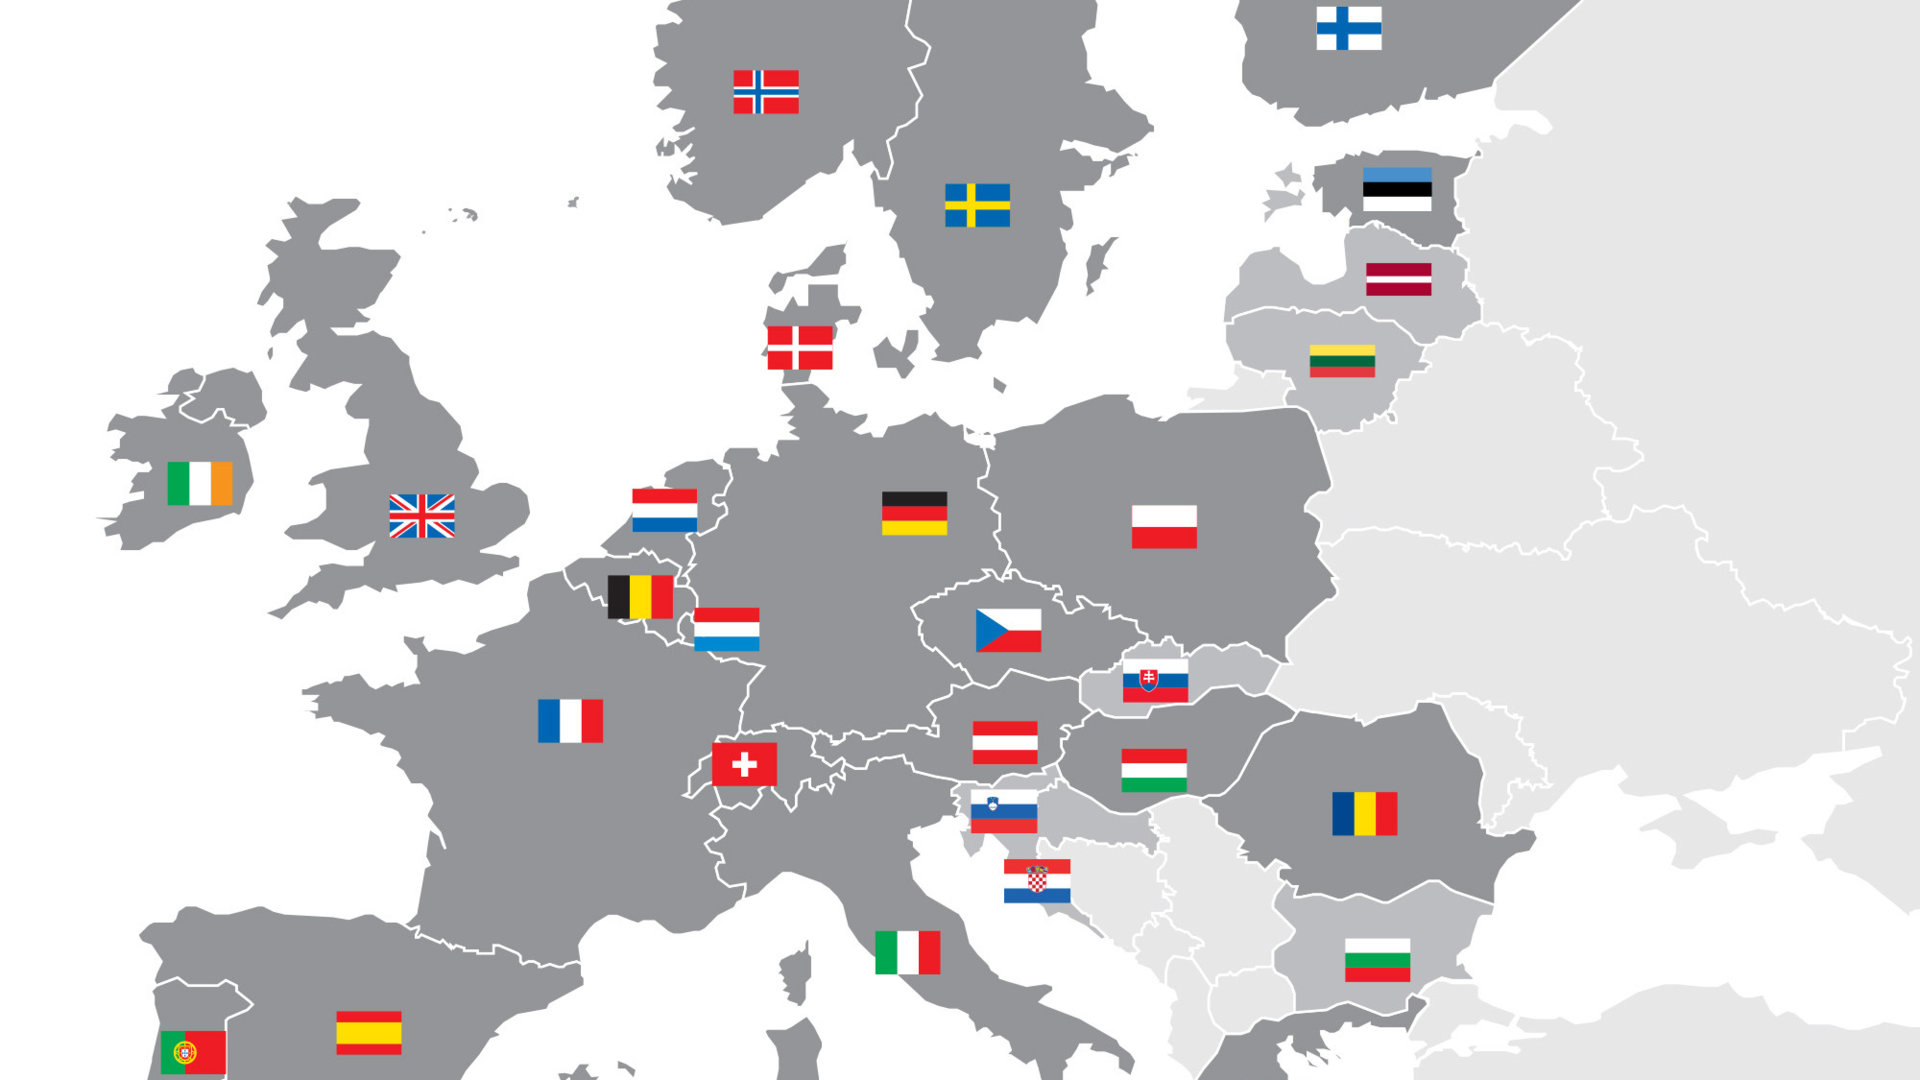 New Member States / Welcome to ESA / About Us / ESA mobile